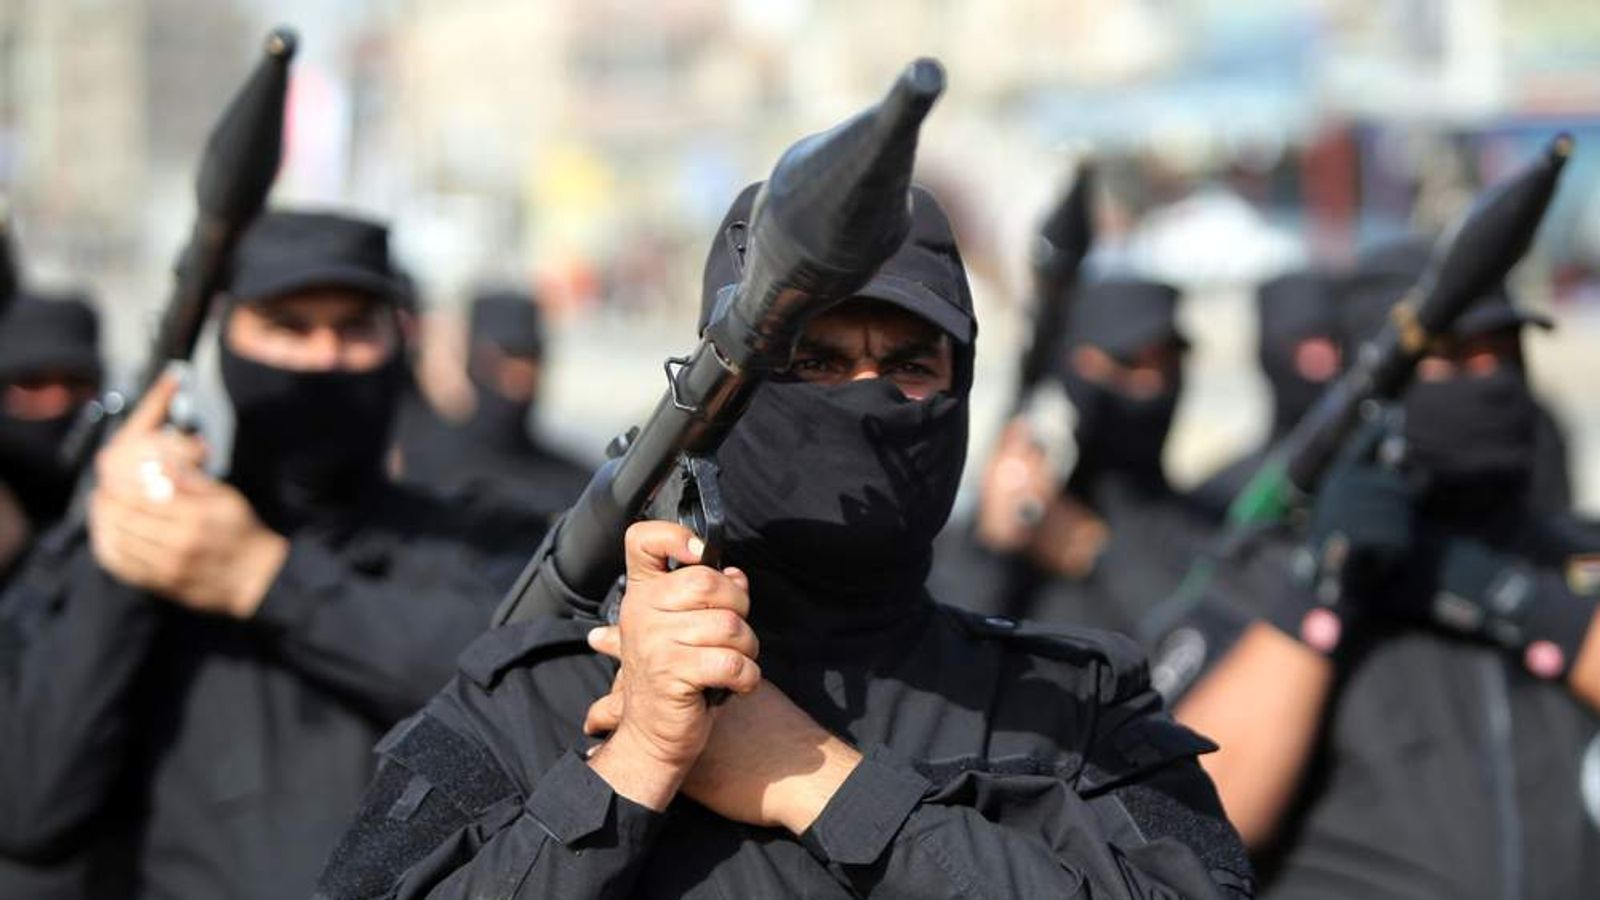 Iraqi Shia fighters parade with their weapons on June 21, 2014 in the capital, Baghdad.